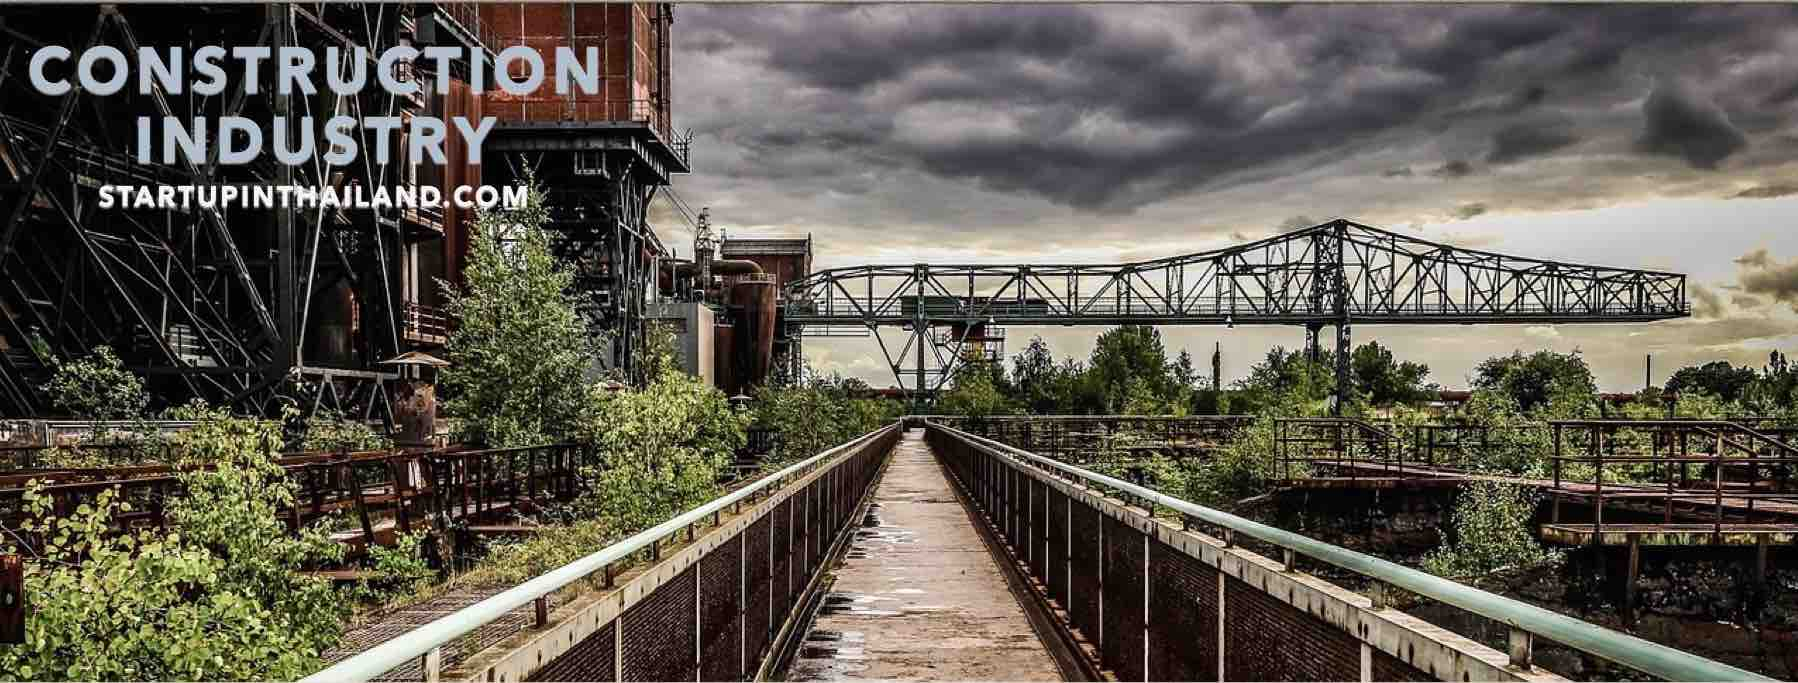 Iron bridge in a construction site with large crane in a dark clouds view